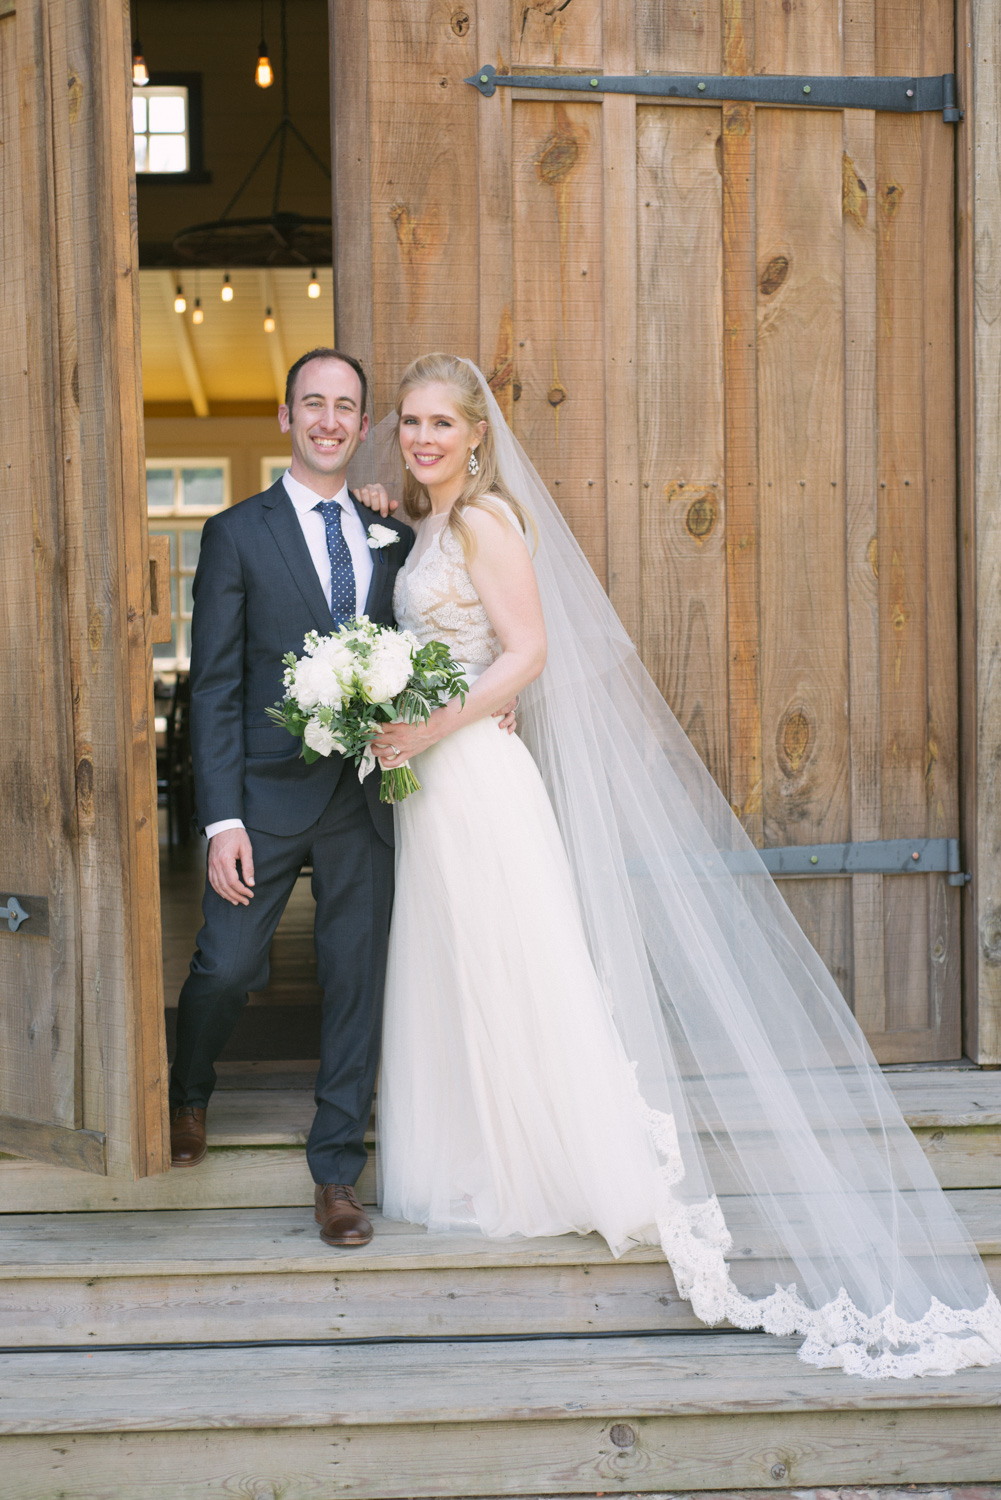 Chattanooga Wedding Photographer | LeahAndMark & Co. | Cloudland Station